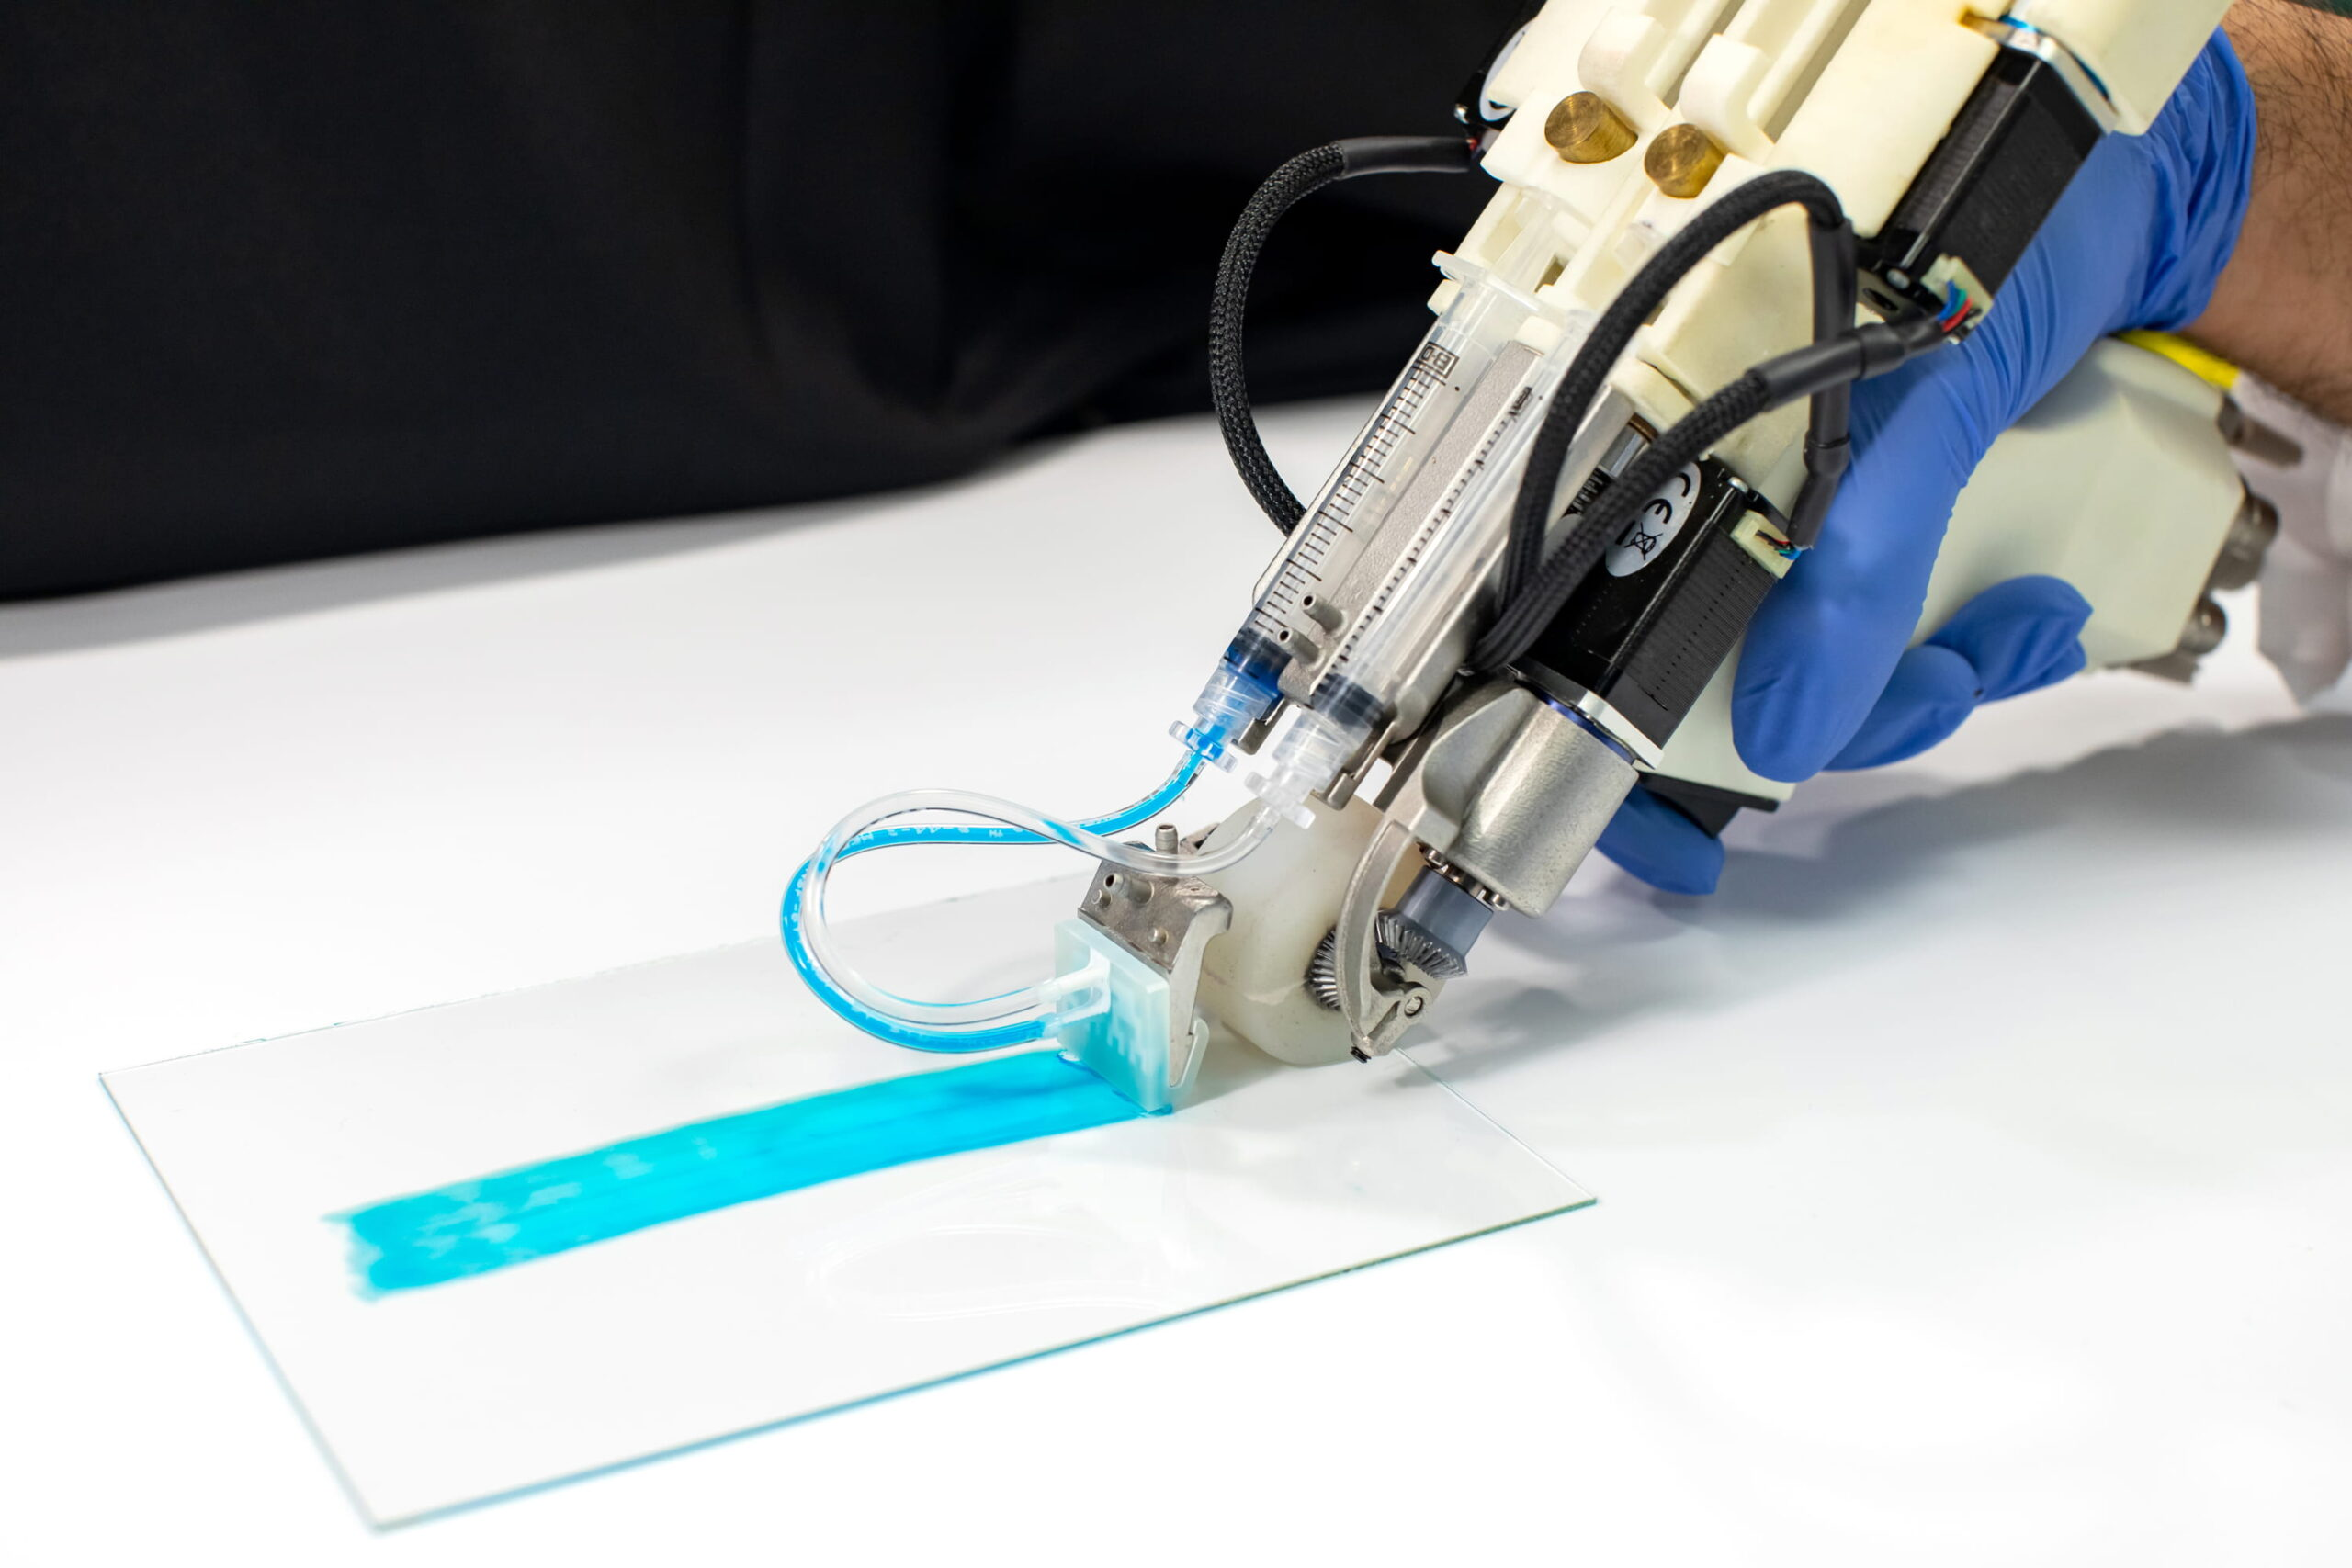 A device with a small roller applies a blue liquid along a smooth glass surface